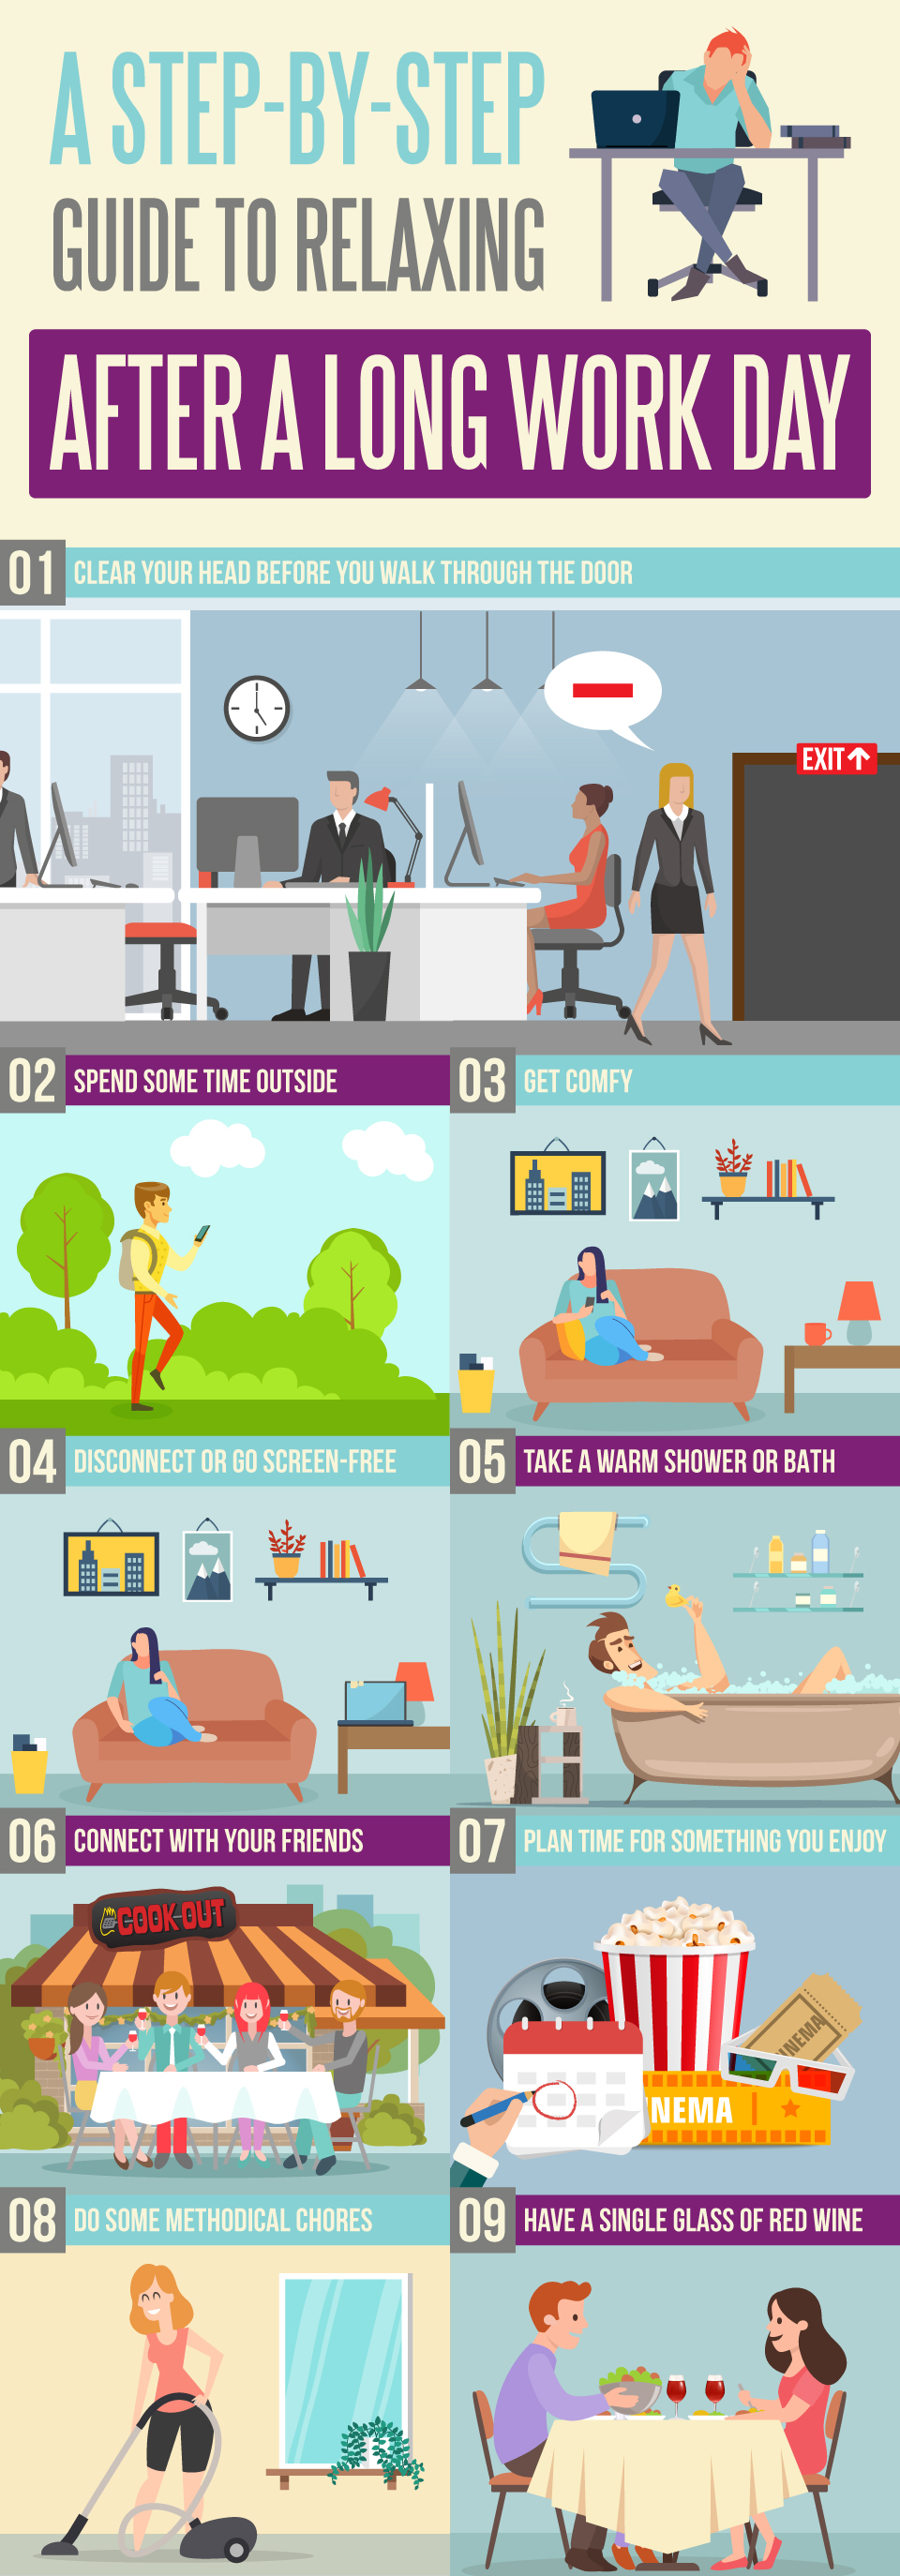 A Step-By-Step Guide to Relaxing After a Long Work Day